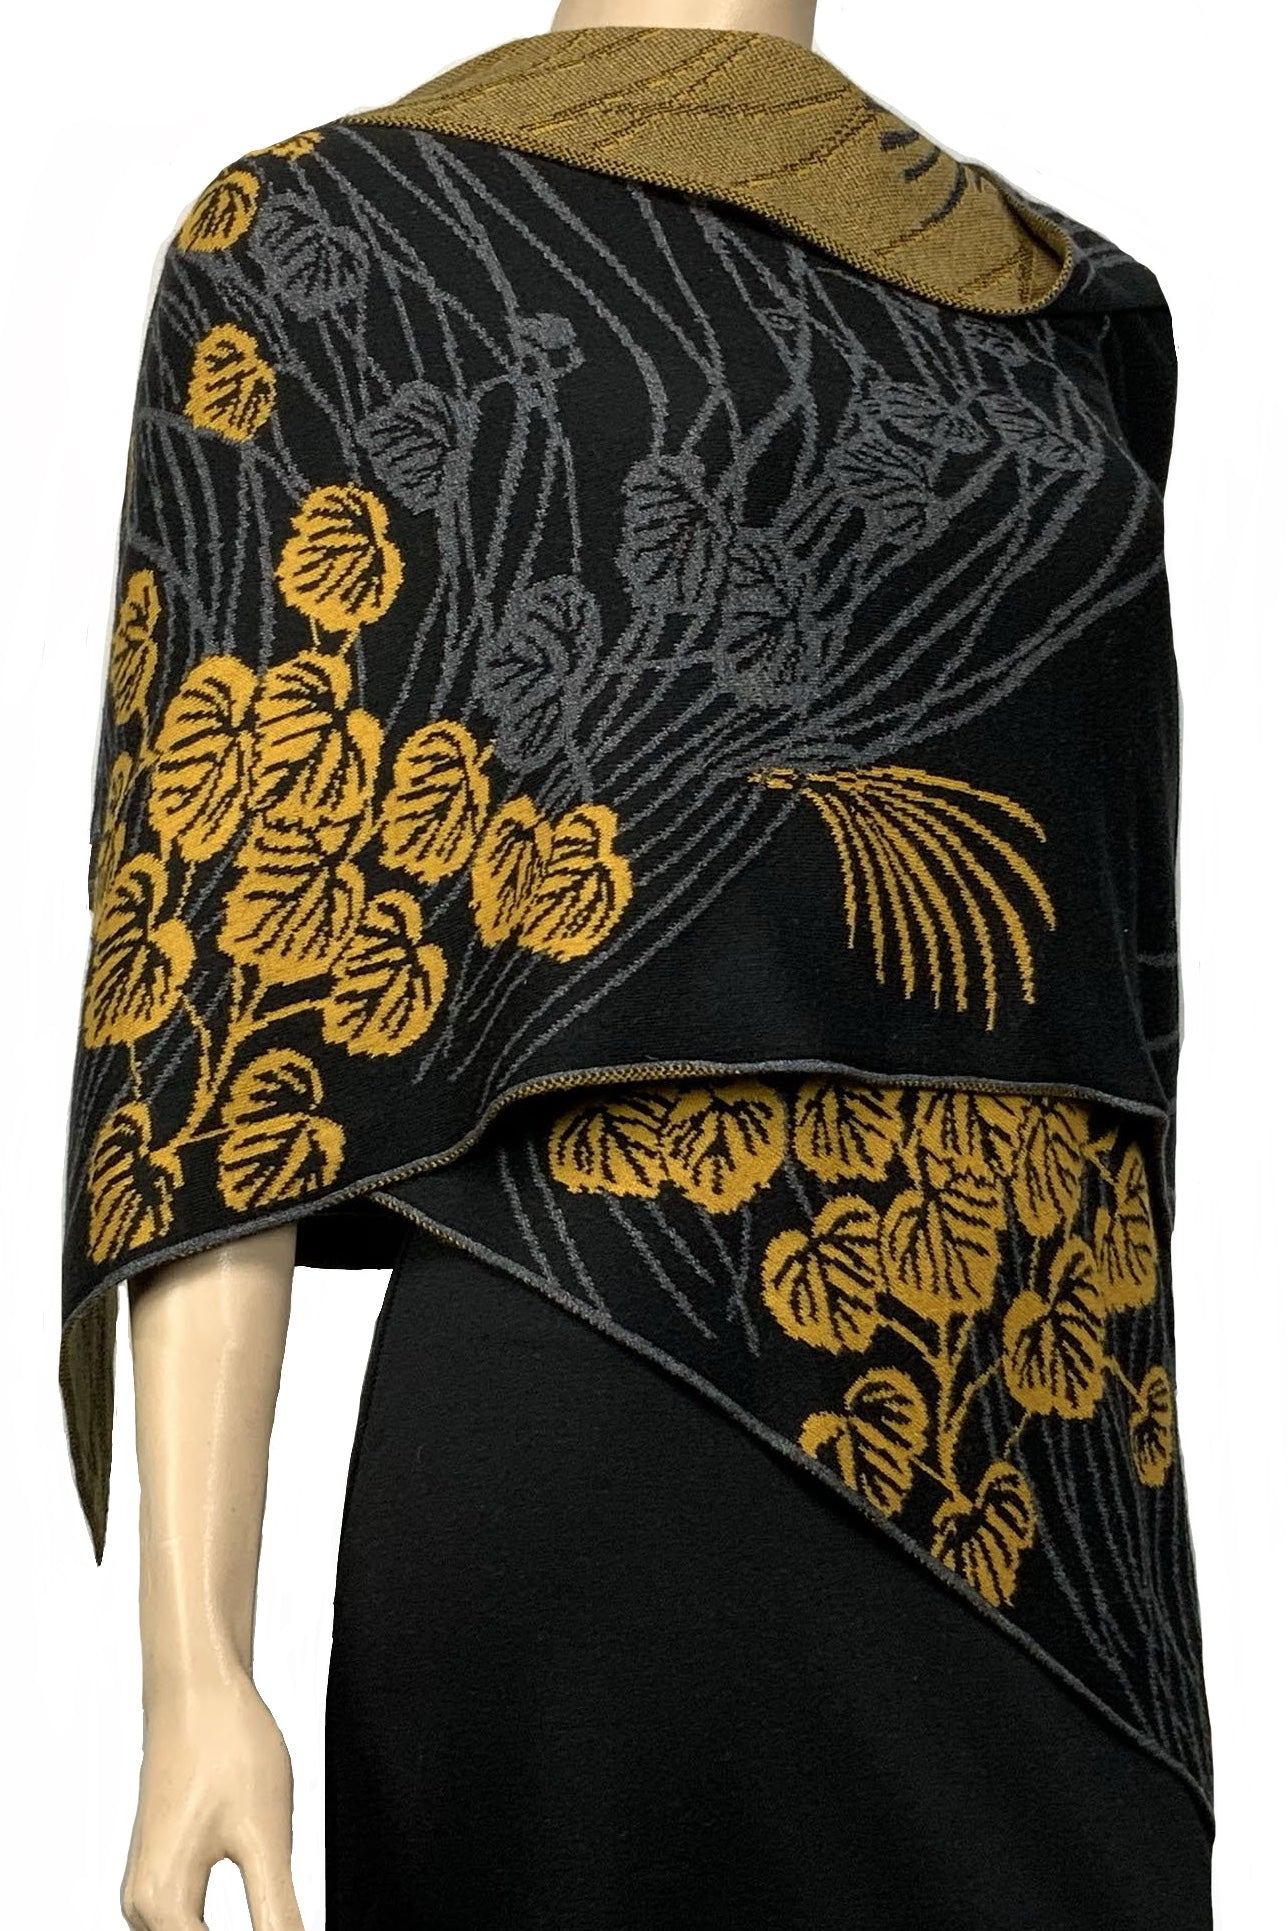 Moonscape Shawl Scarf Wrap Black, Dark Grey, Gold